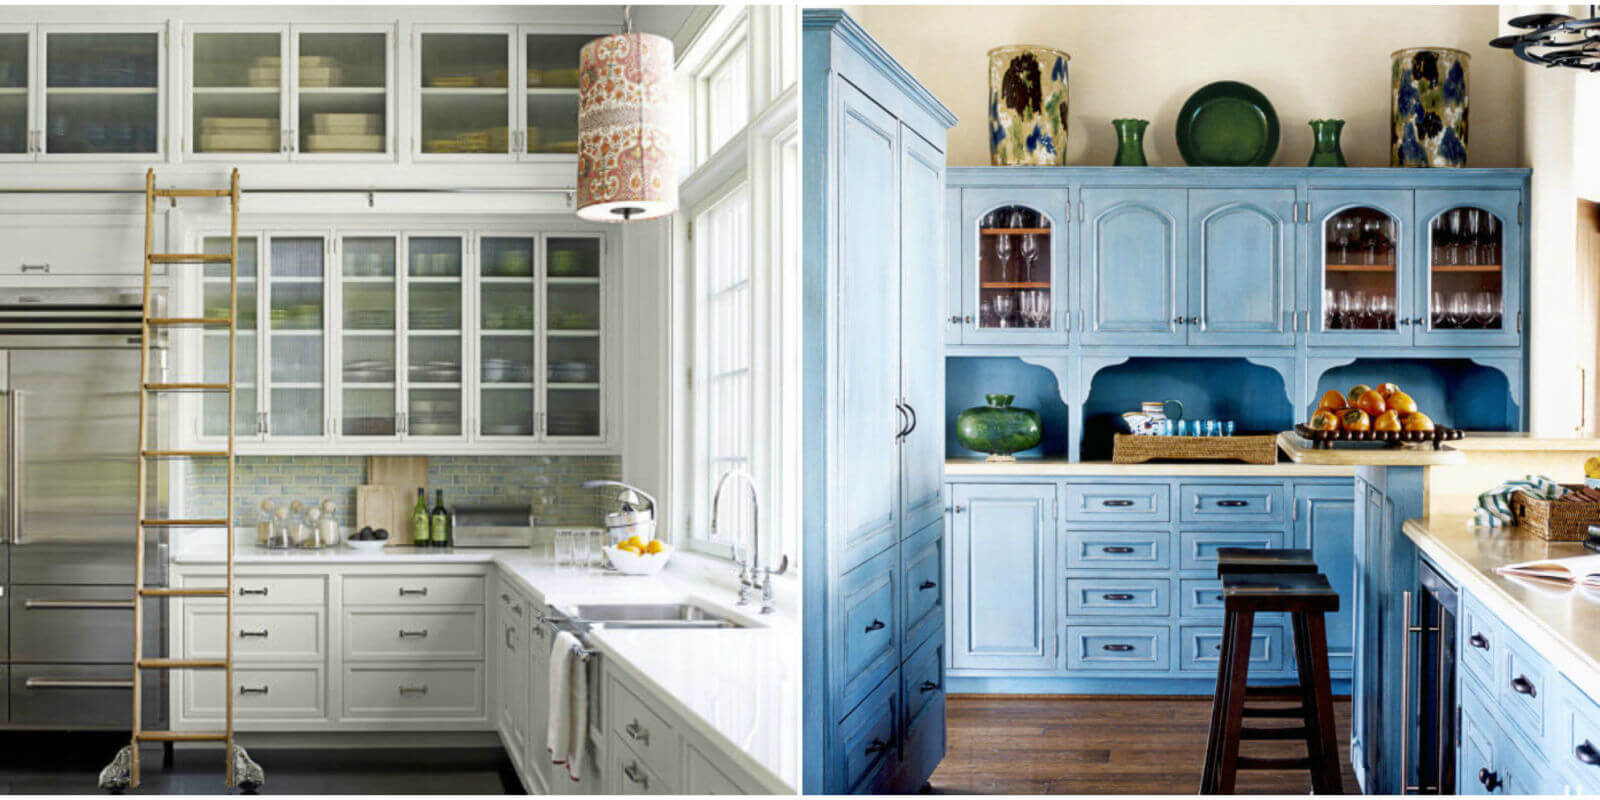 There are many different takes on kitchen cabinets, here's just a few